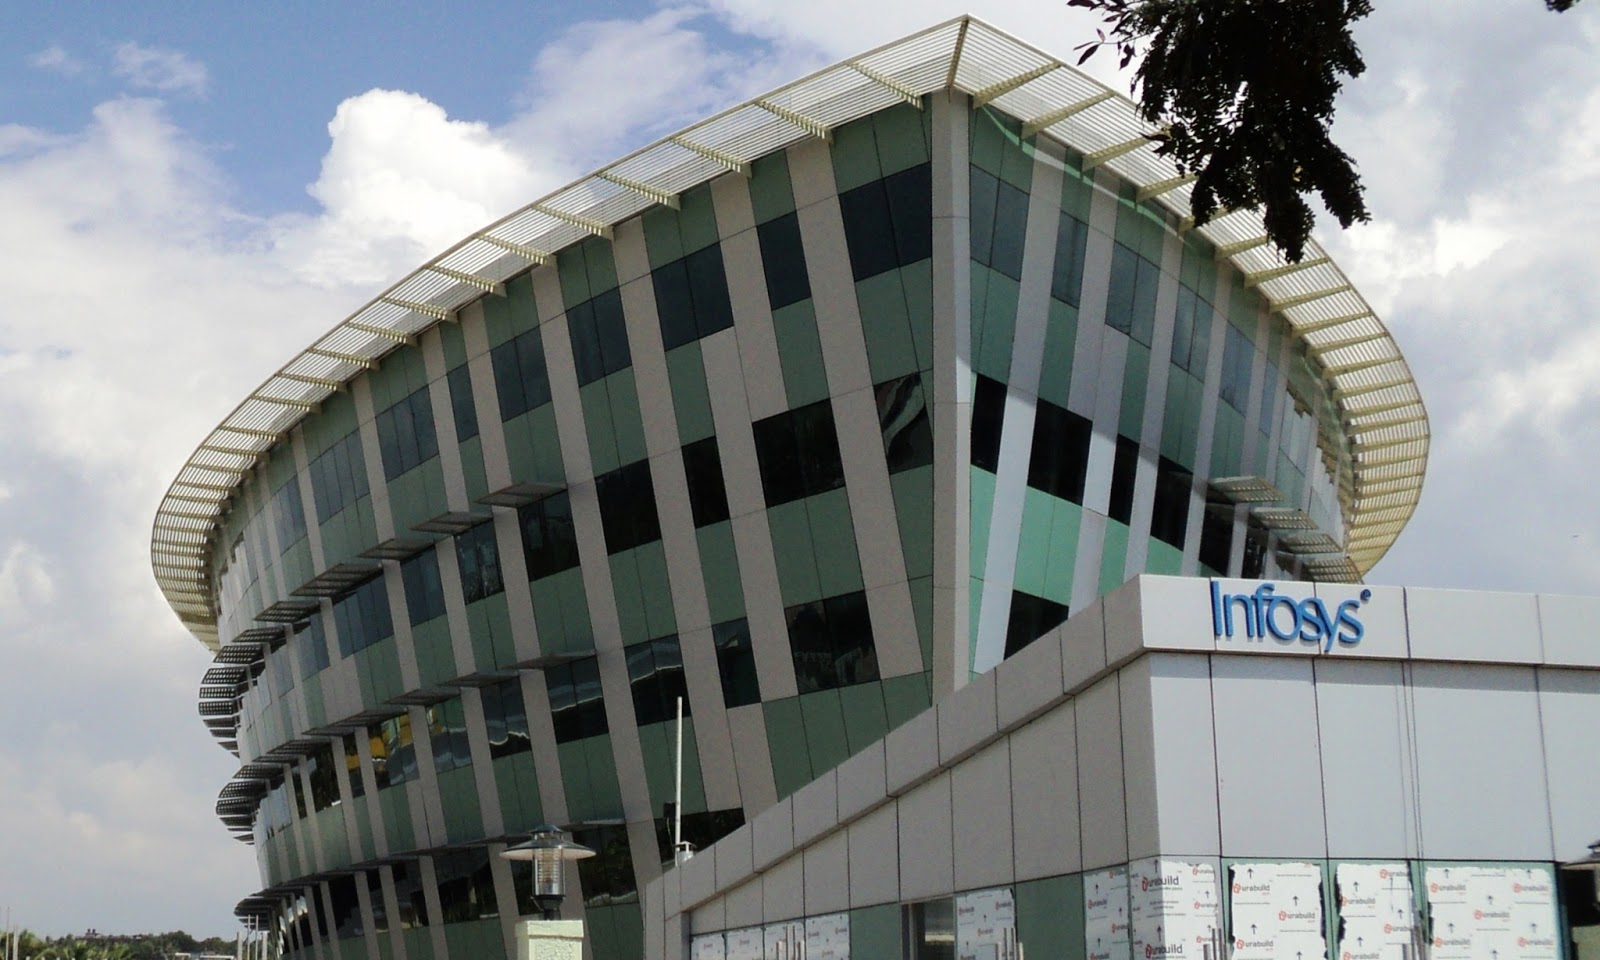 Infosys Company Source Group Of Hd Wallpapers